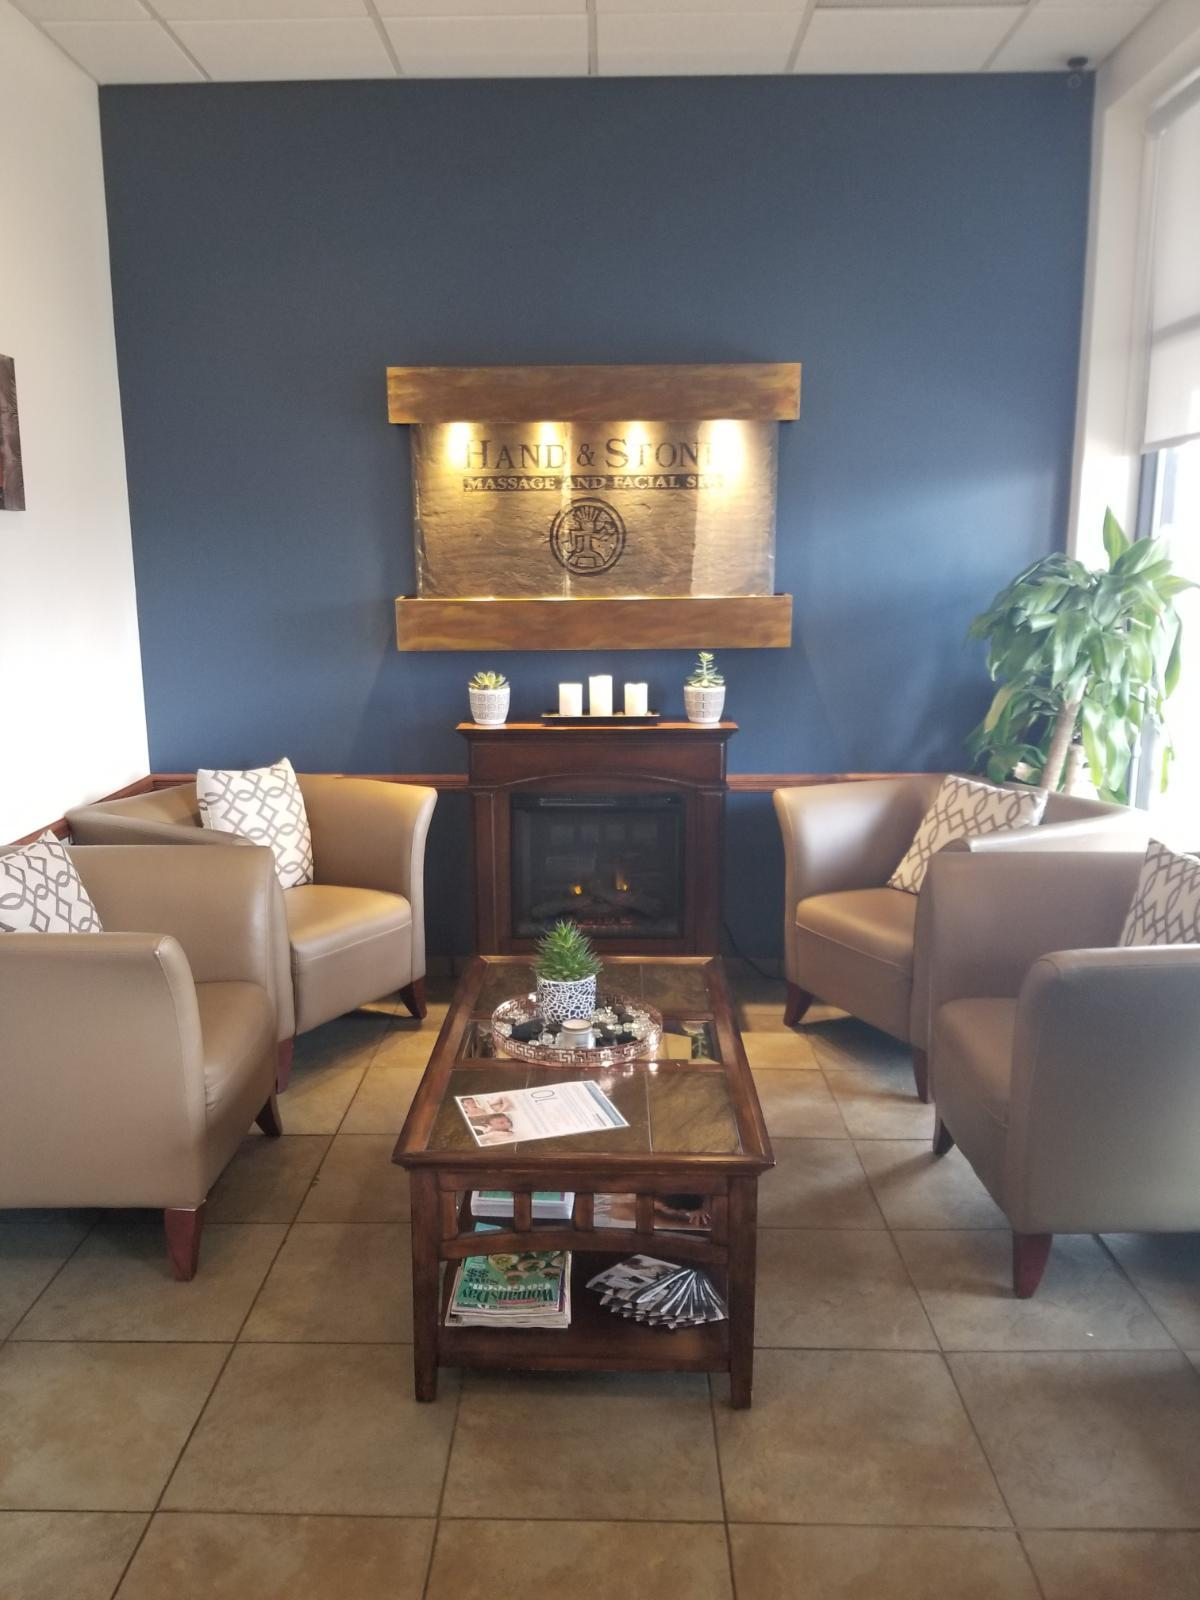 Start your relaxation in our cozy waiting area